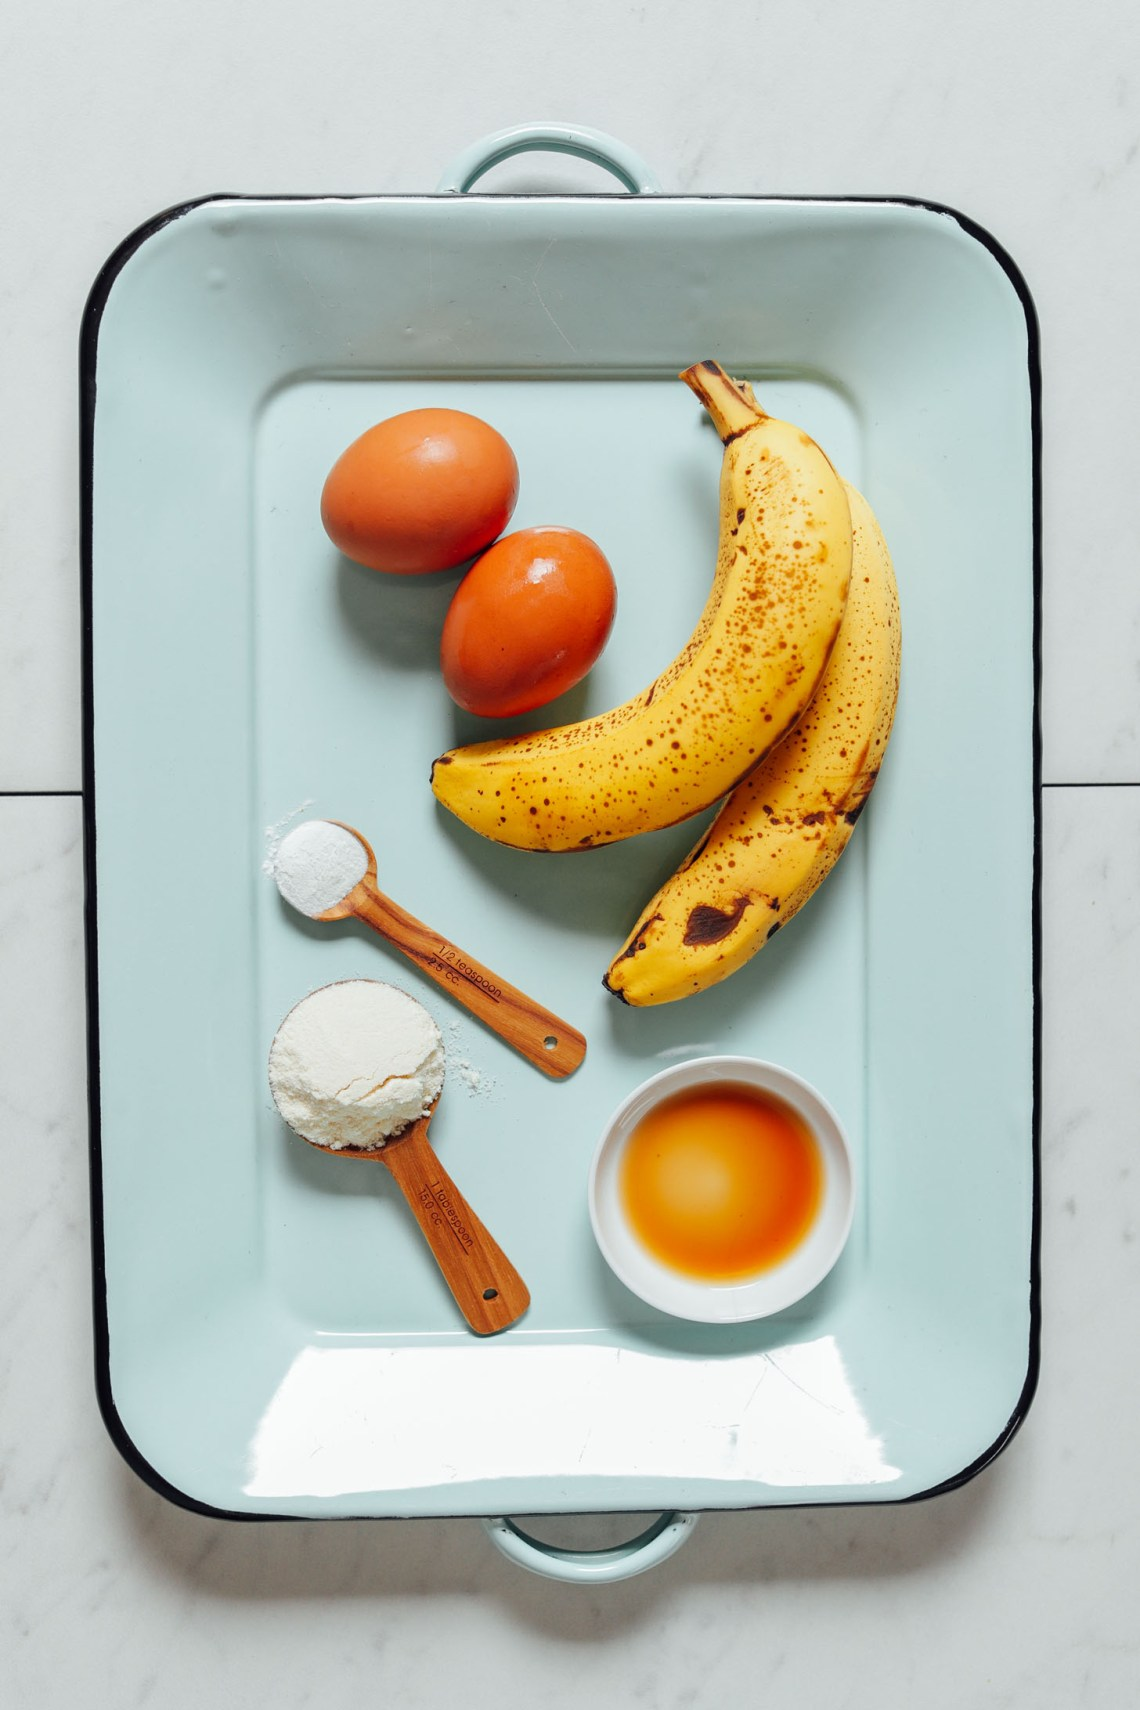 Tray with 5 simple ingredients for making Banana Egg Pancakes